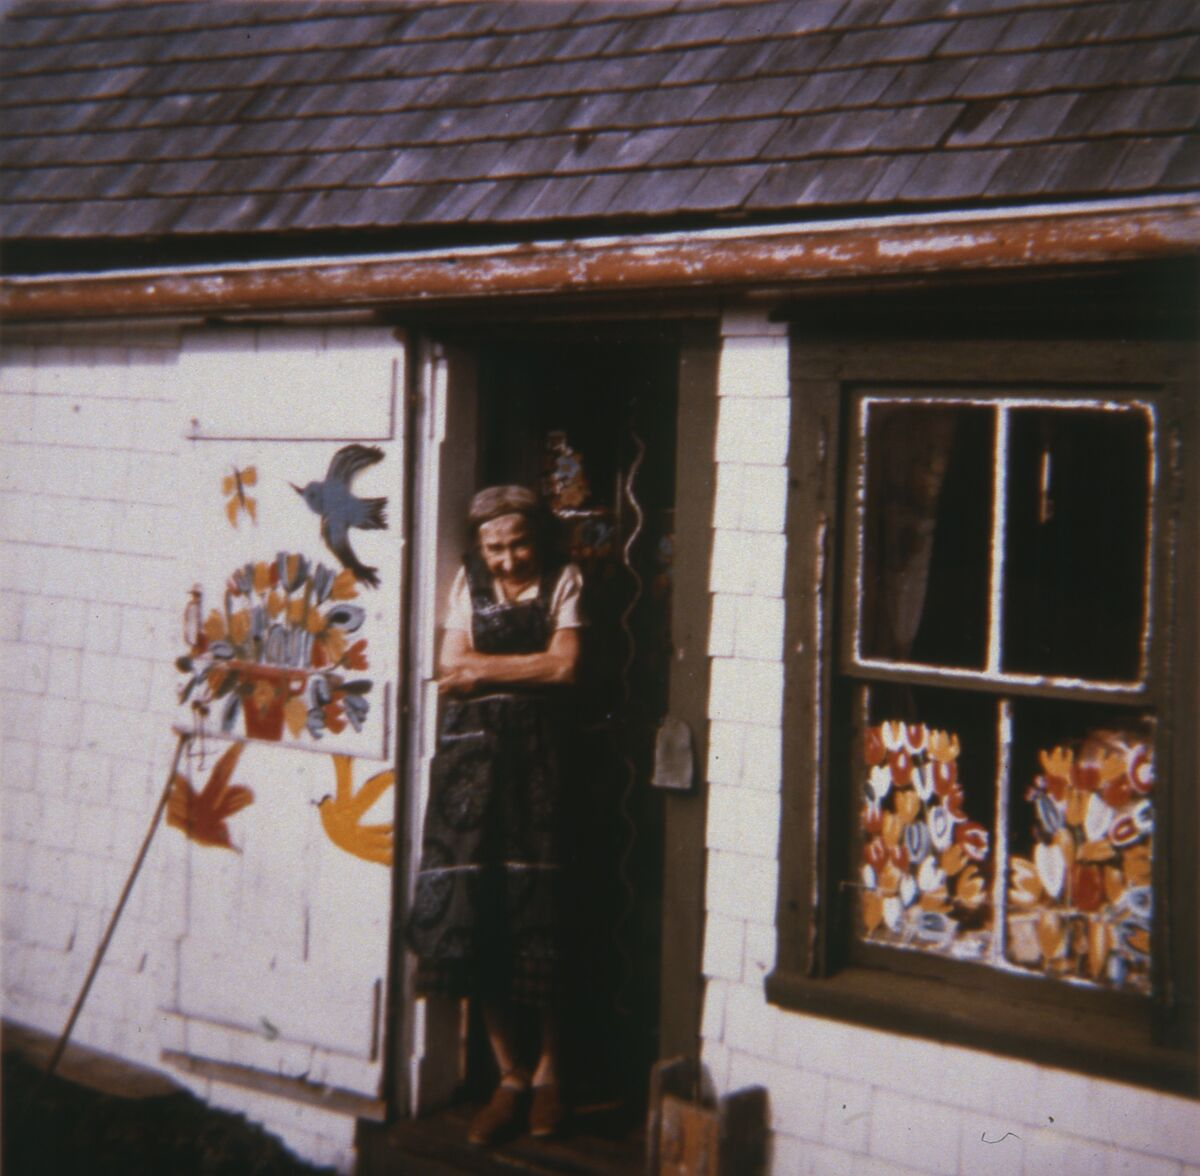 Maud Lewis in front of her house, 1961. Photo by Cora Greenaway. Courtesy of the Art Gallery of Nova Scotia.